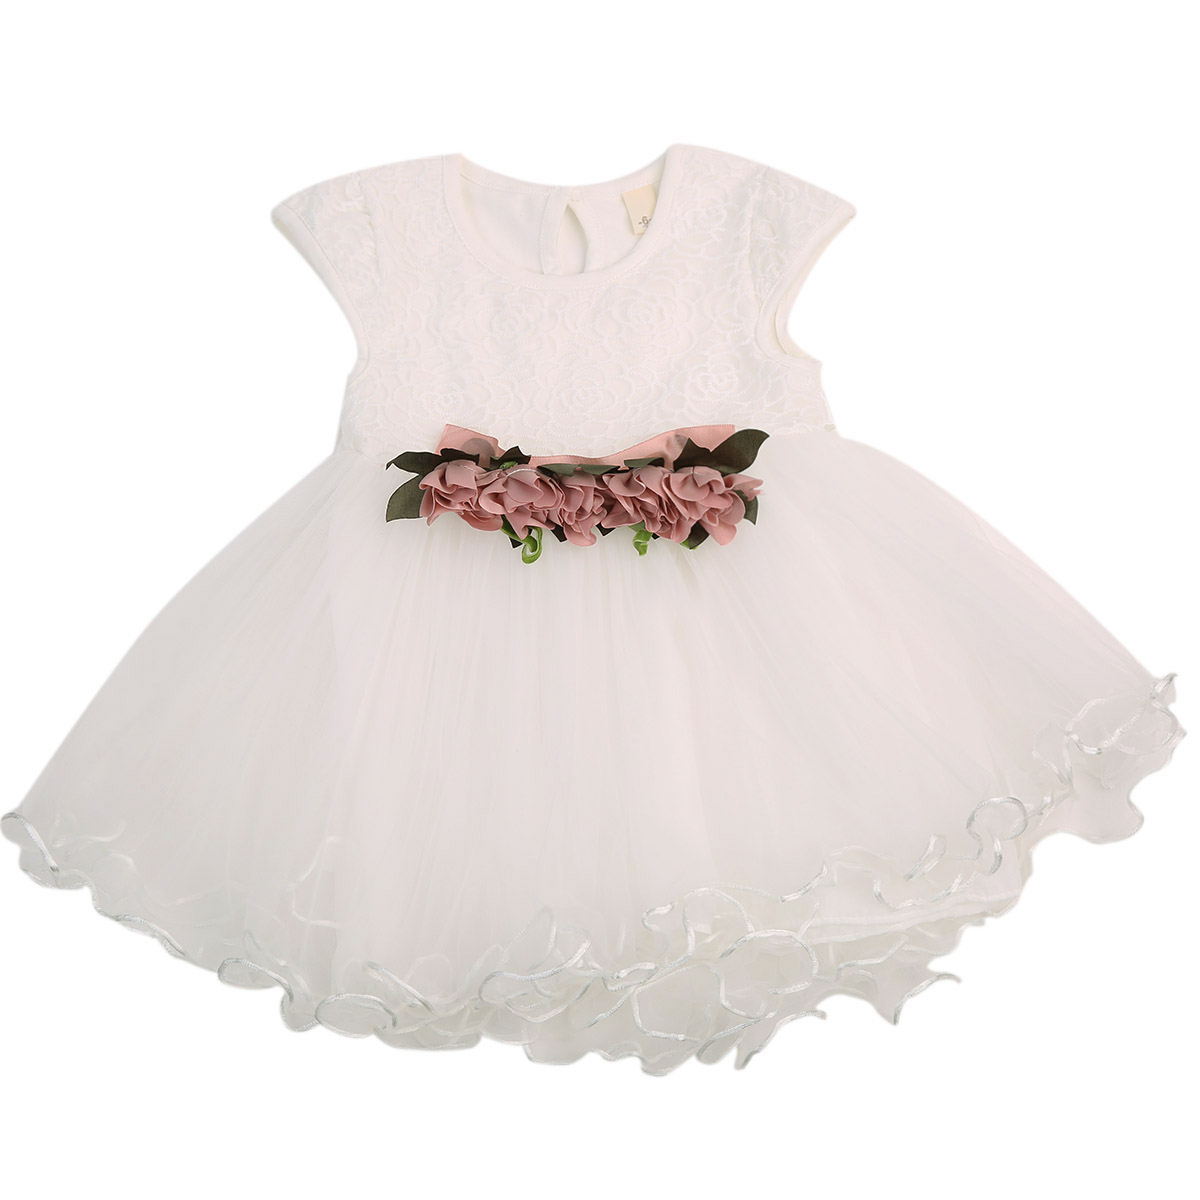 Summer 2017 Toddler Infant Newborn Kids Baby Girls Floral Dress Princess Party Wedding Tulle Dresses Sleeveless Sundress 6M-3Y toddler kids baby girls princess dress party pageant wedding dresses with waistband